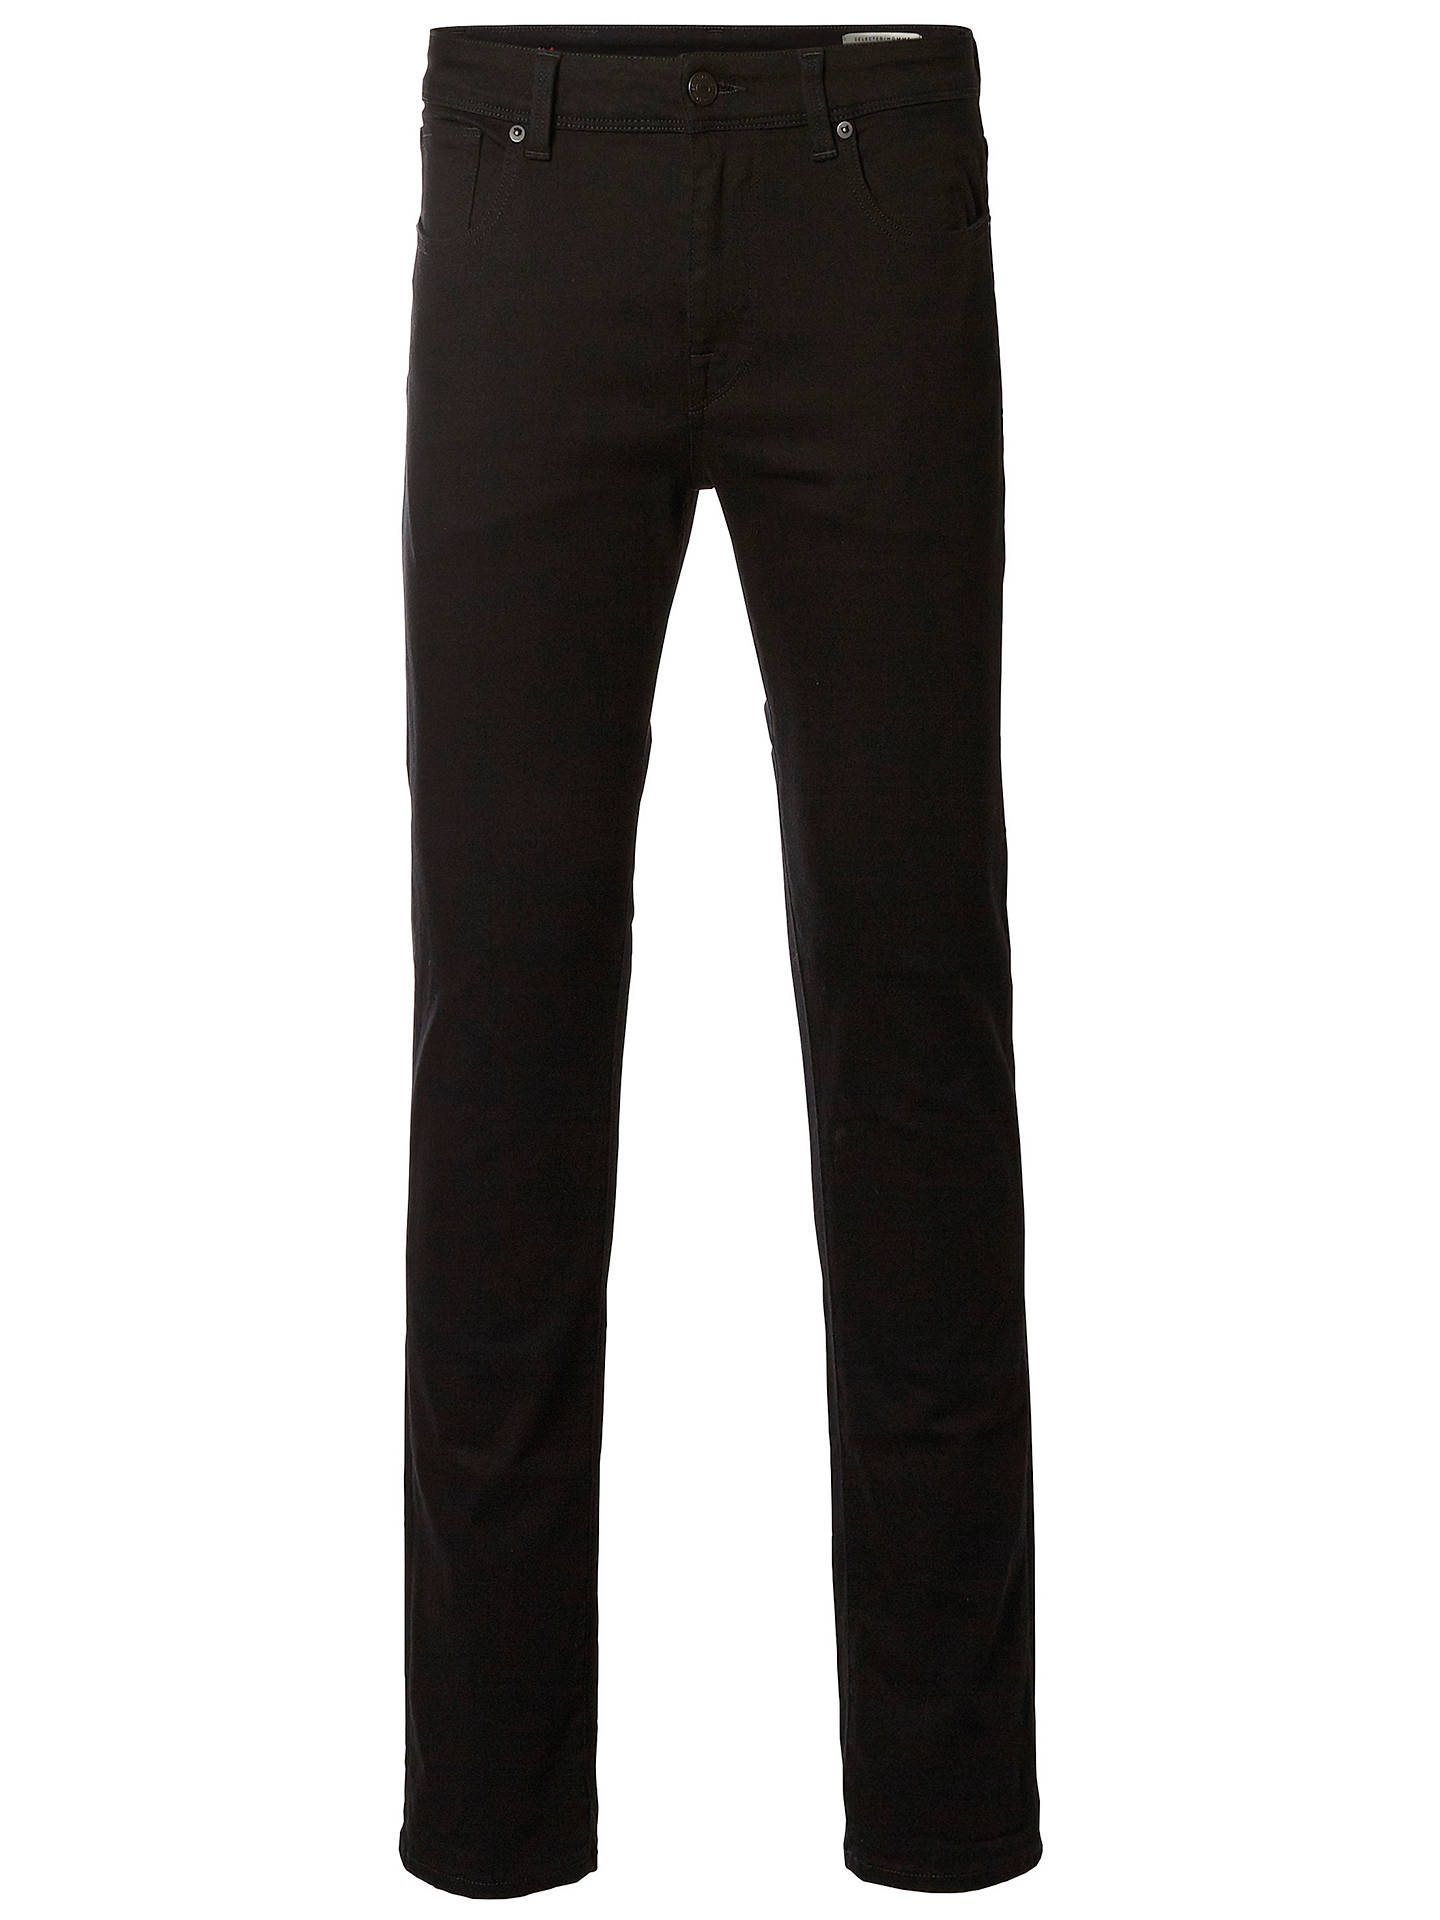 BuySelected Homme Leon Slim Jeans, Black, 30R Online at johnlewis.com